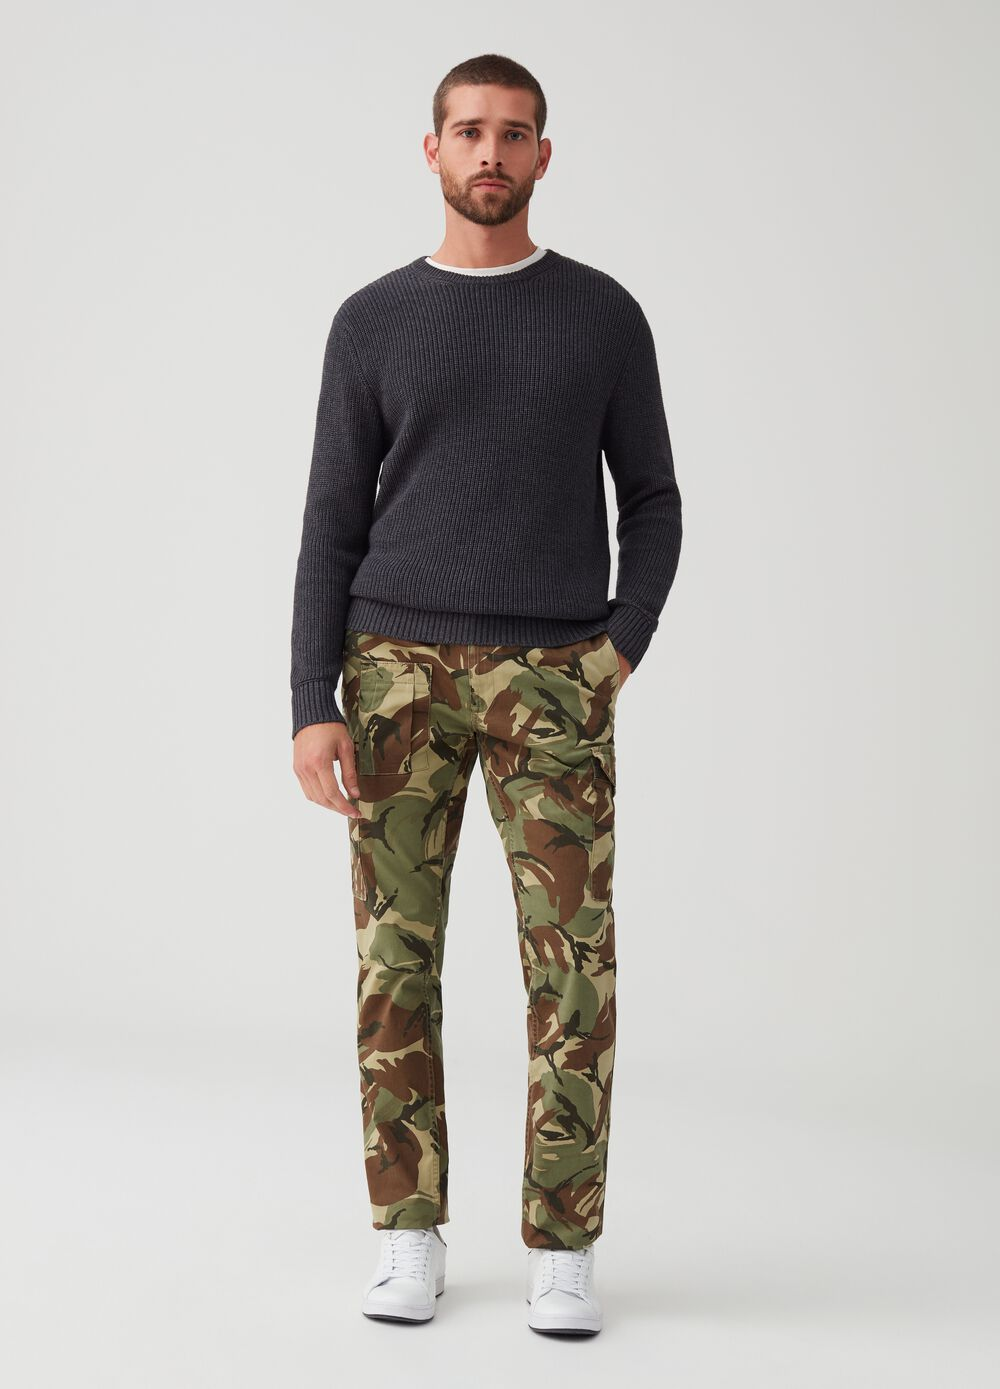 Camouflage patterned cargo trousers